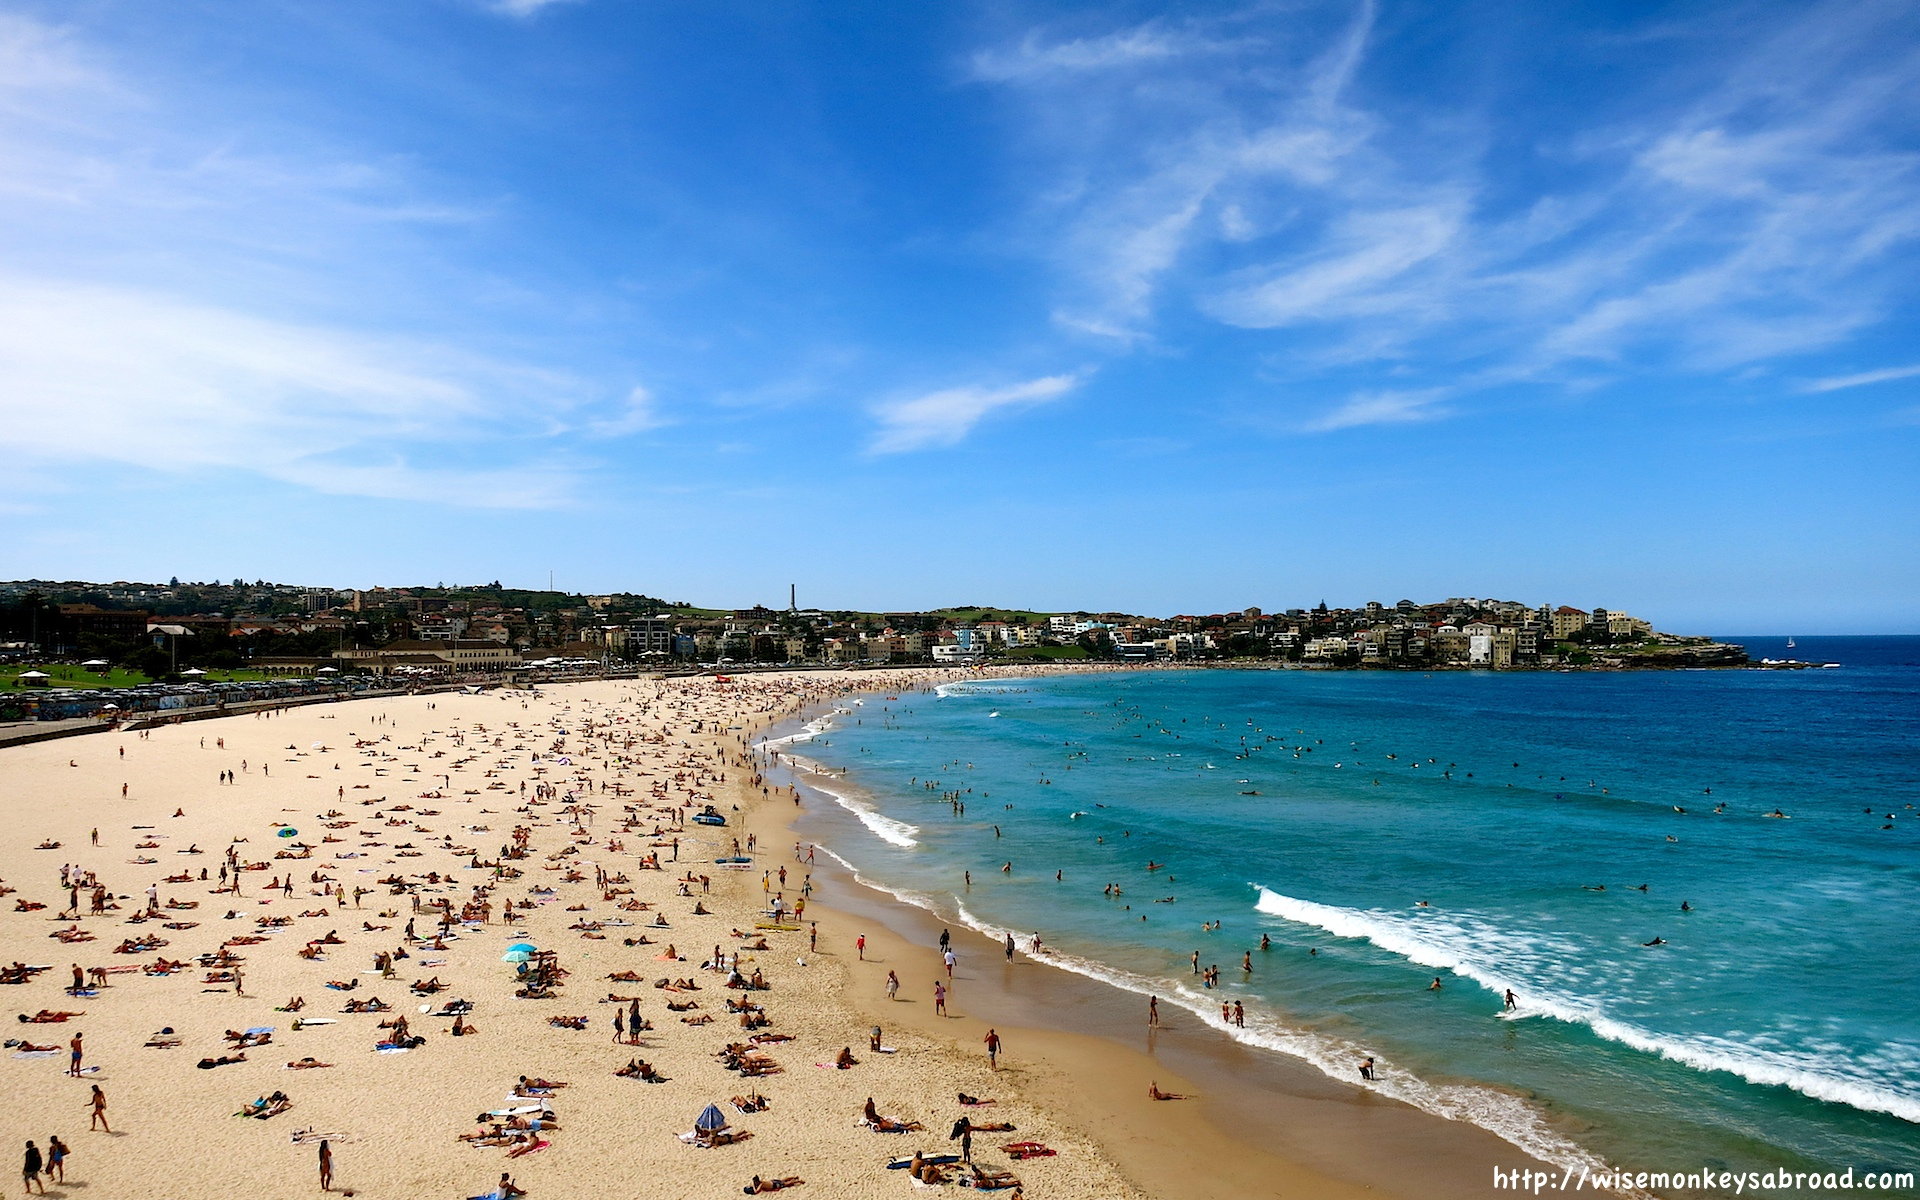 Hundreds of people relaxing on Bondi Beach